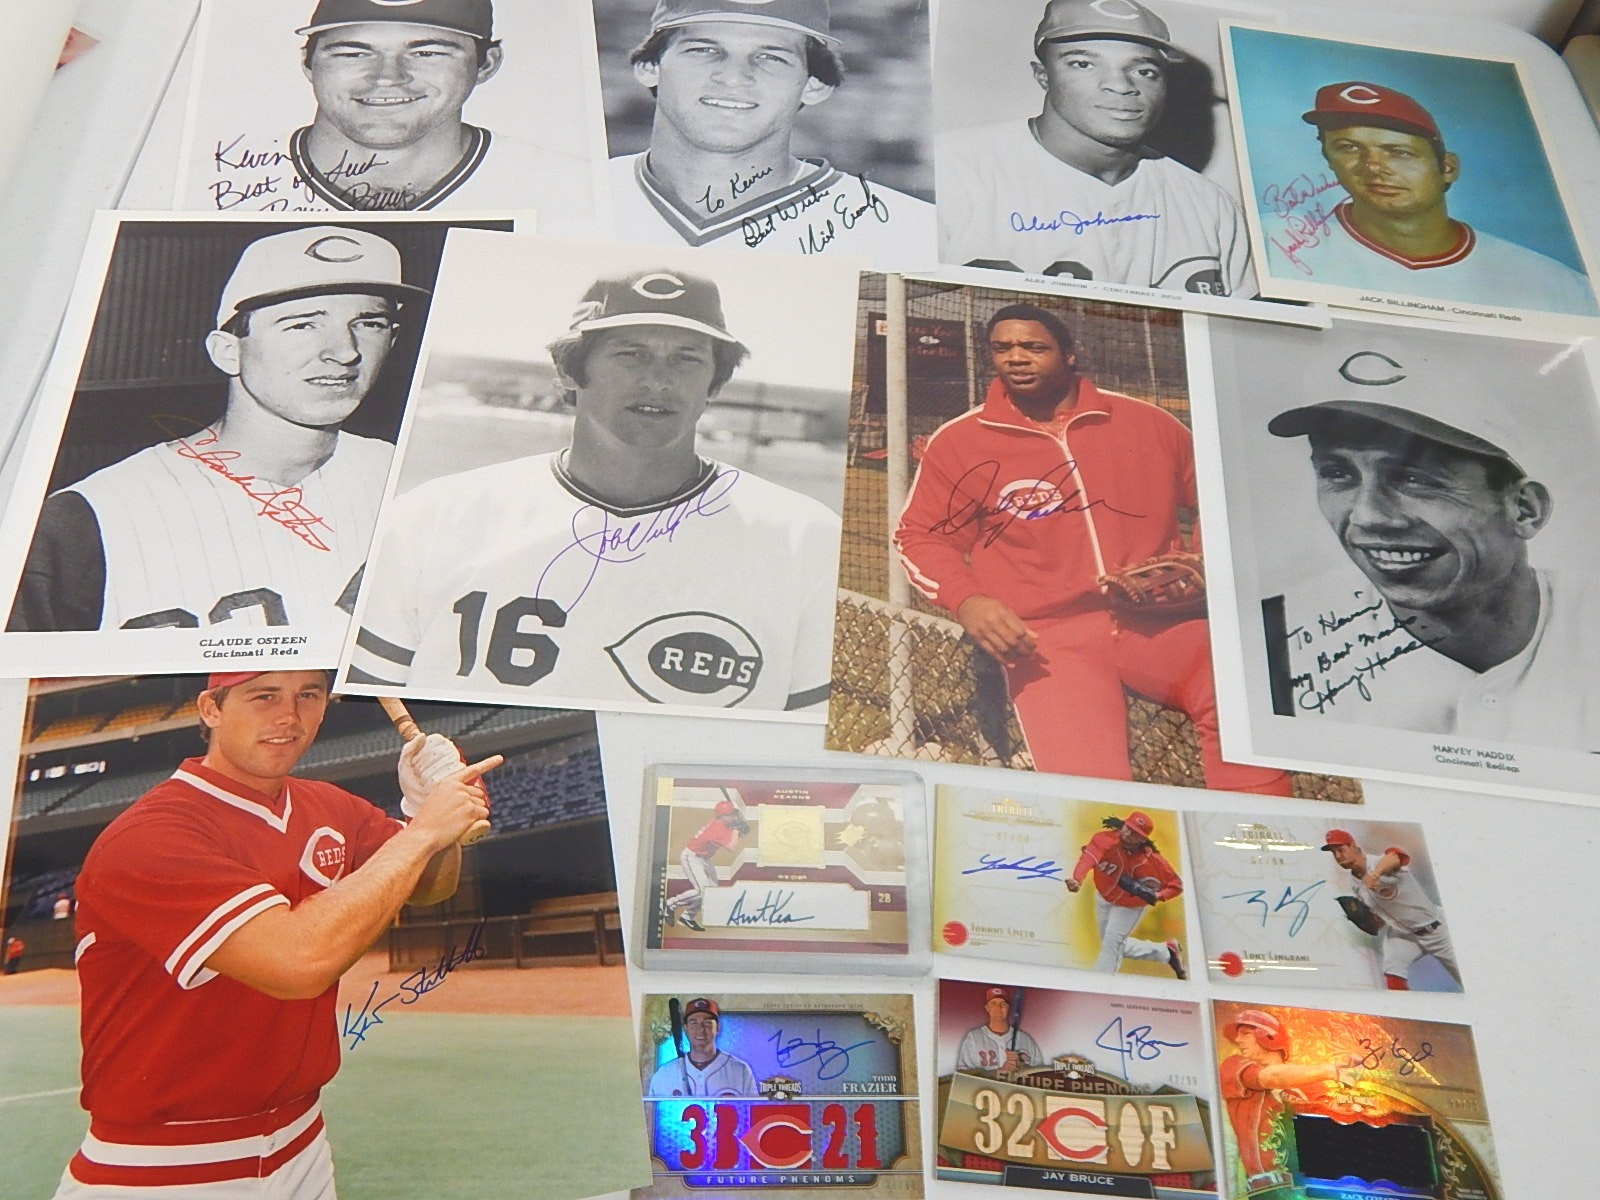 Cincinnati Reds Signed Photographs and Baseball Cards